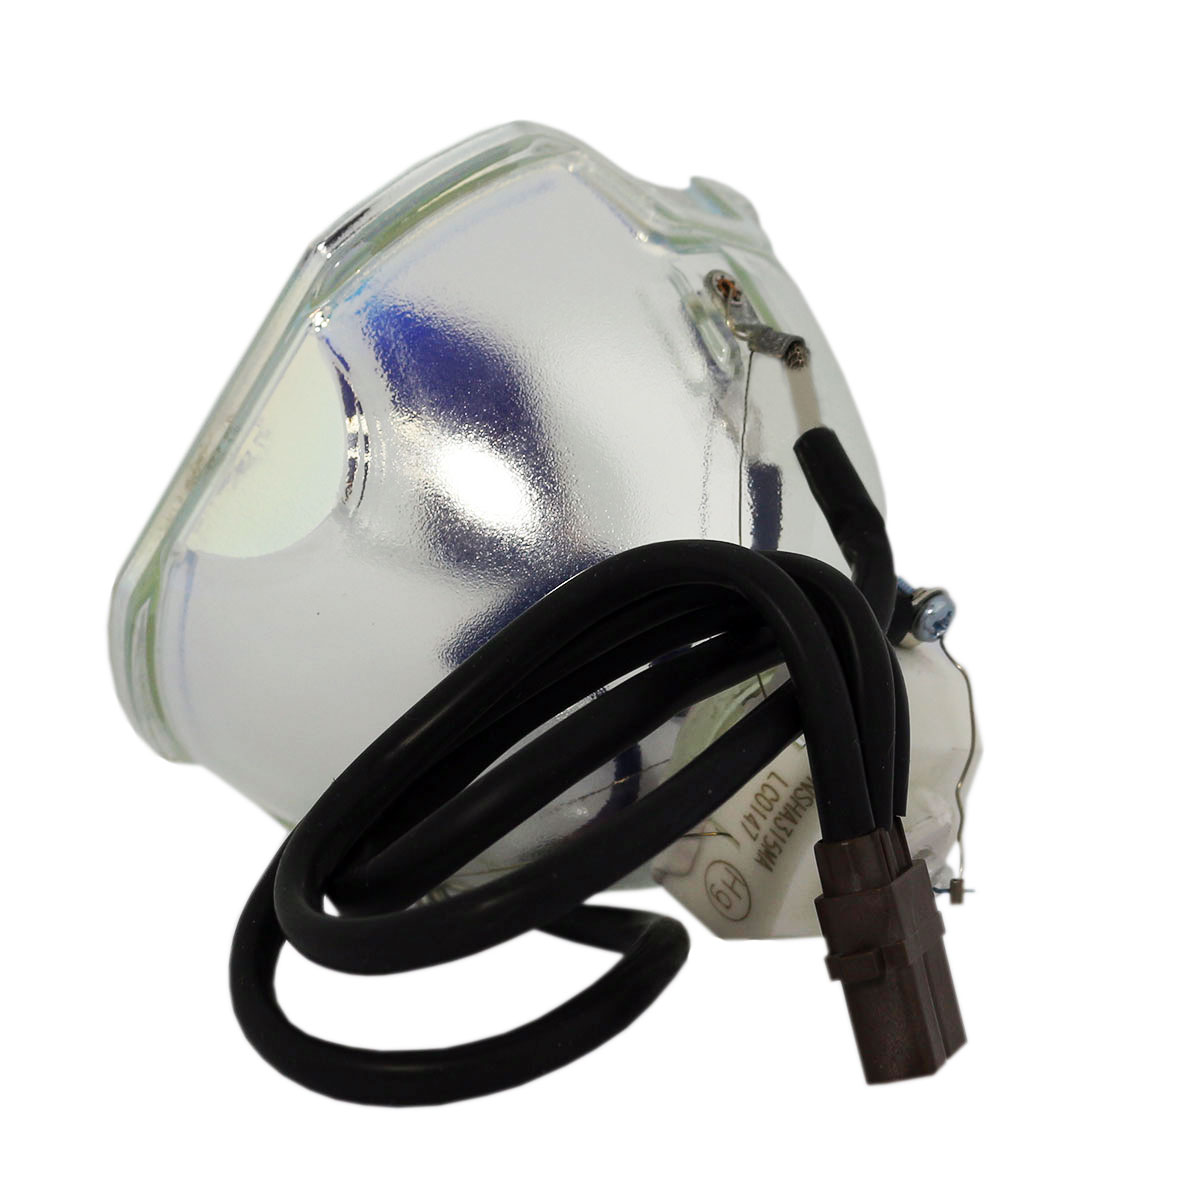 ET-LAD57W ETLAD57W For Panasonic PTD5700 PT-D5700E PT-D5700EL PT-D5700UL PT-DW5100E PT-DW5100UL PT-DW5100 Projector Lamp Bulb pt ae1000 pt ae2000 pt ae3000 projector lamp bulb et lae1000 for panasonic high quality totally new